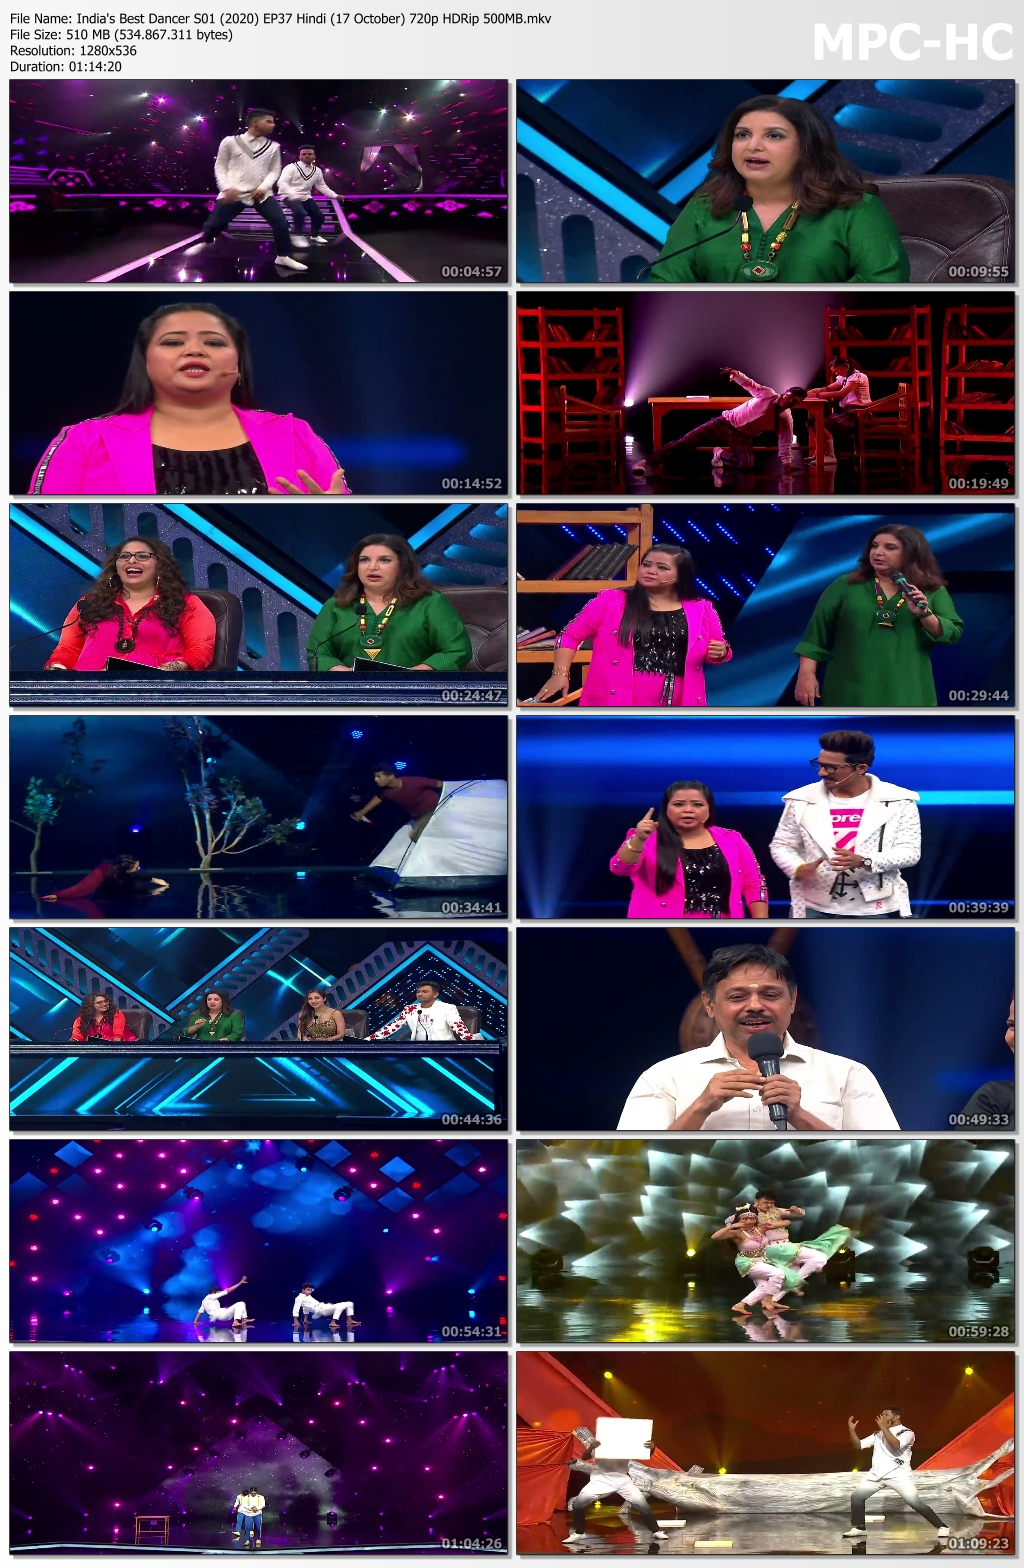 India-s-Best-Dancer-S01-2020-EP37-Hindi-17-October-720p-HDRip-500-MB-mkv-thumbs